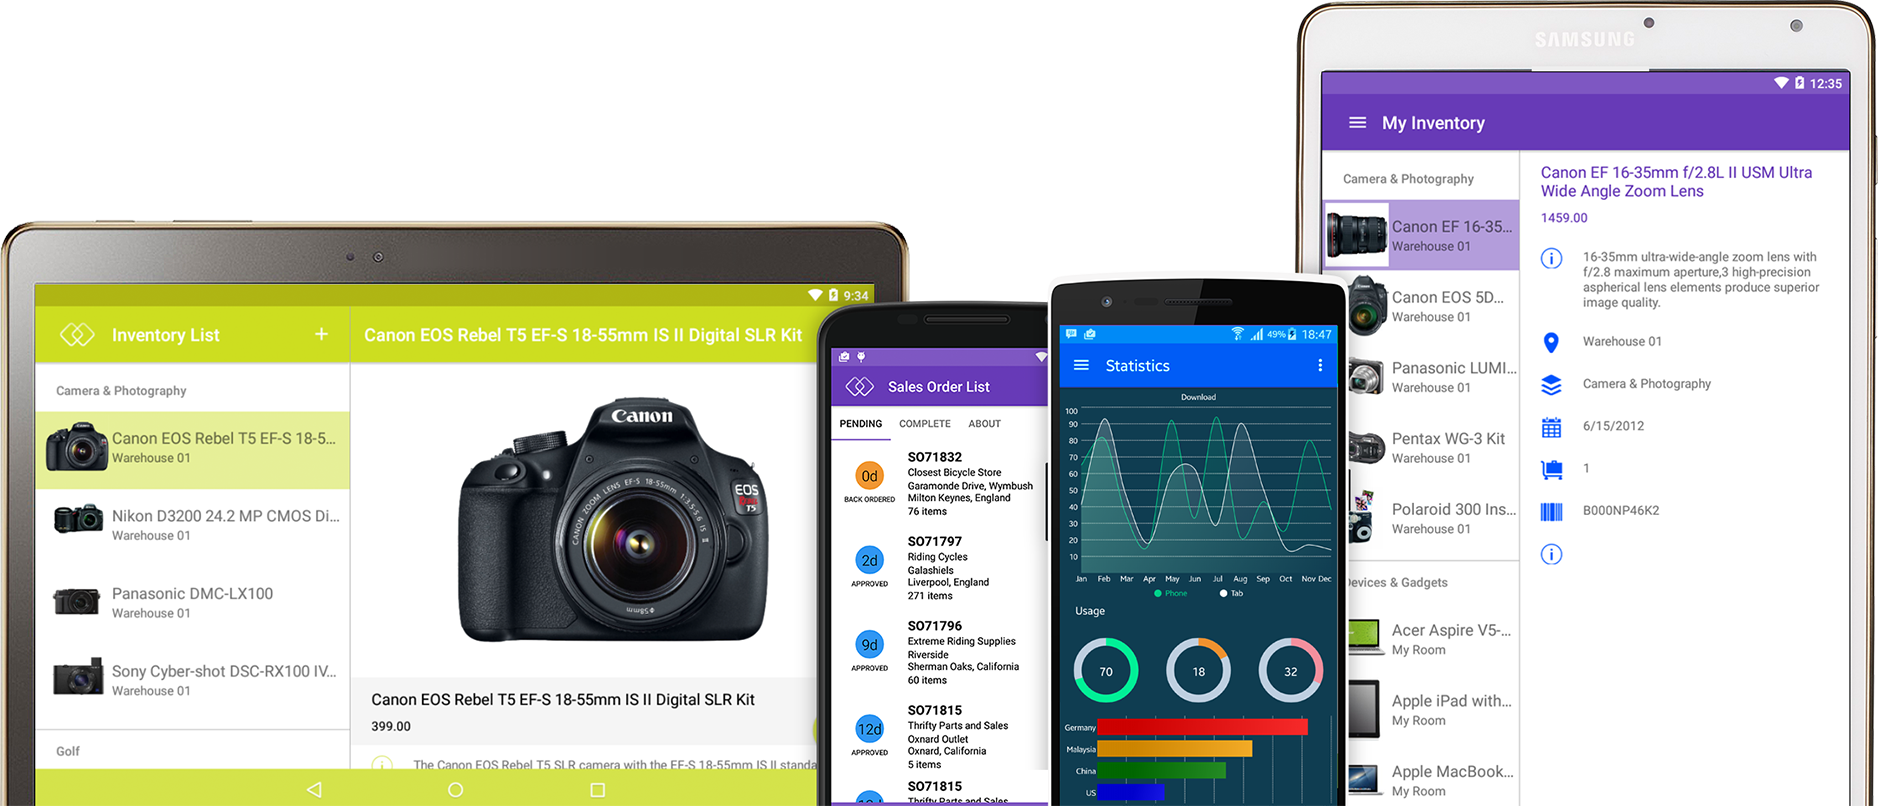 Intersoft Solutions - Crosslight for Android